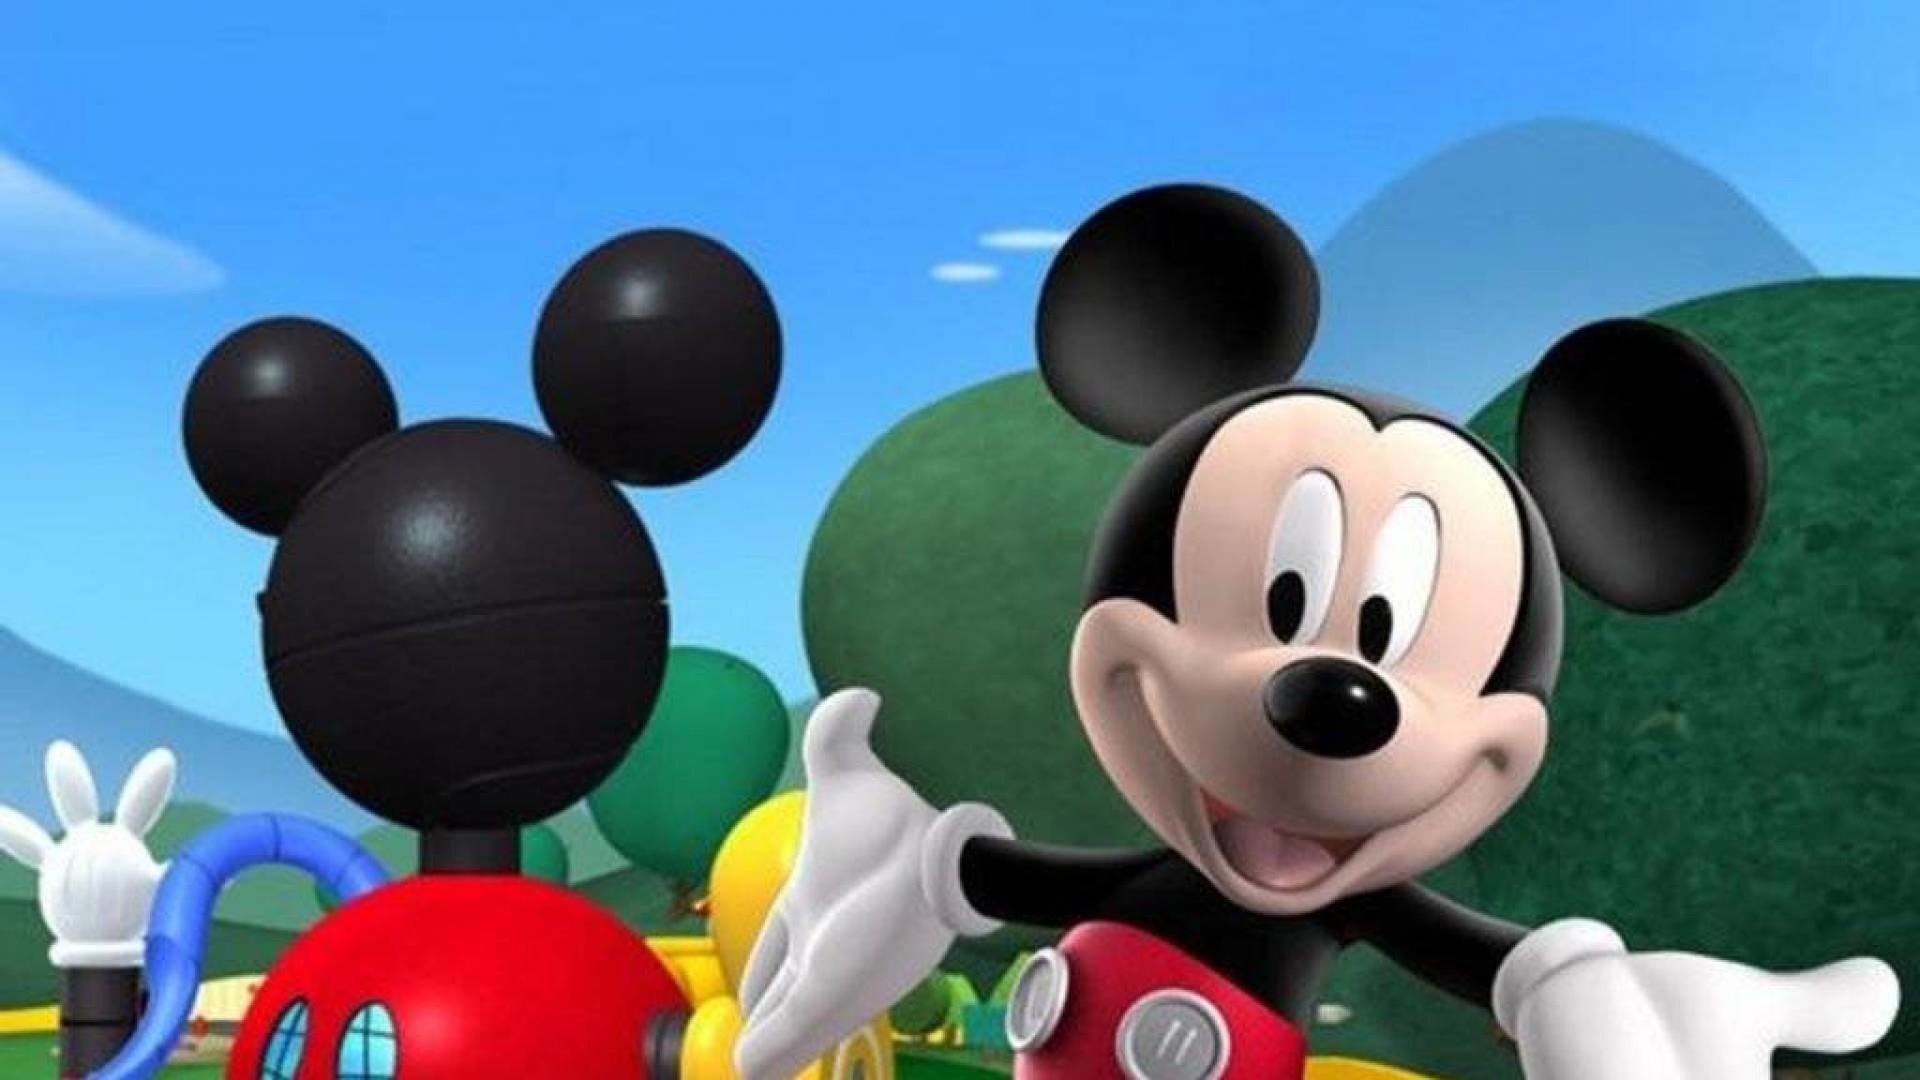 Mickey Mouse Clubhouse Images Wallpapers (57+ images)